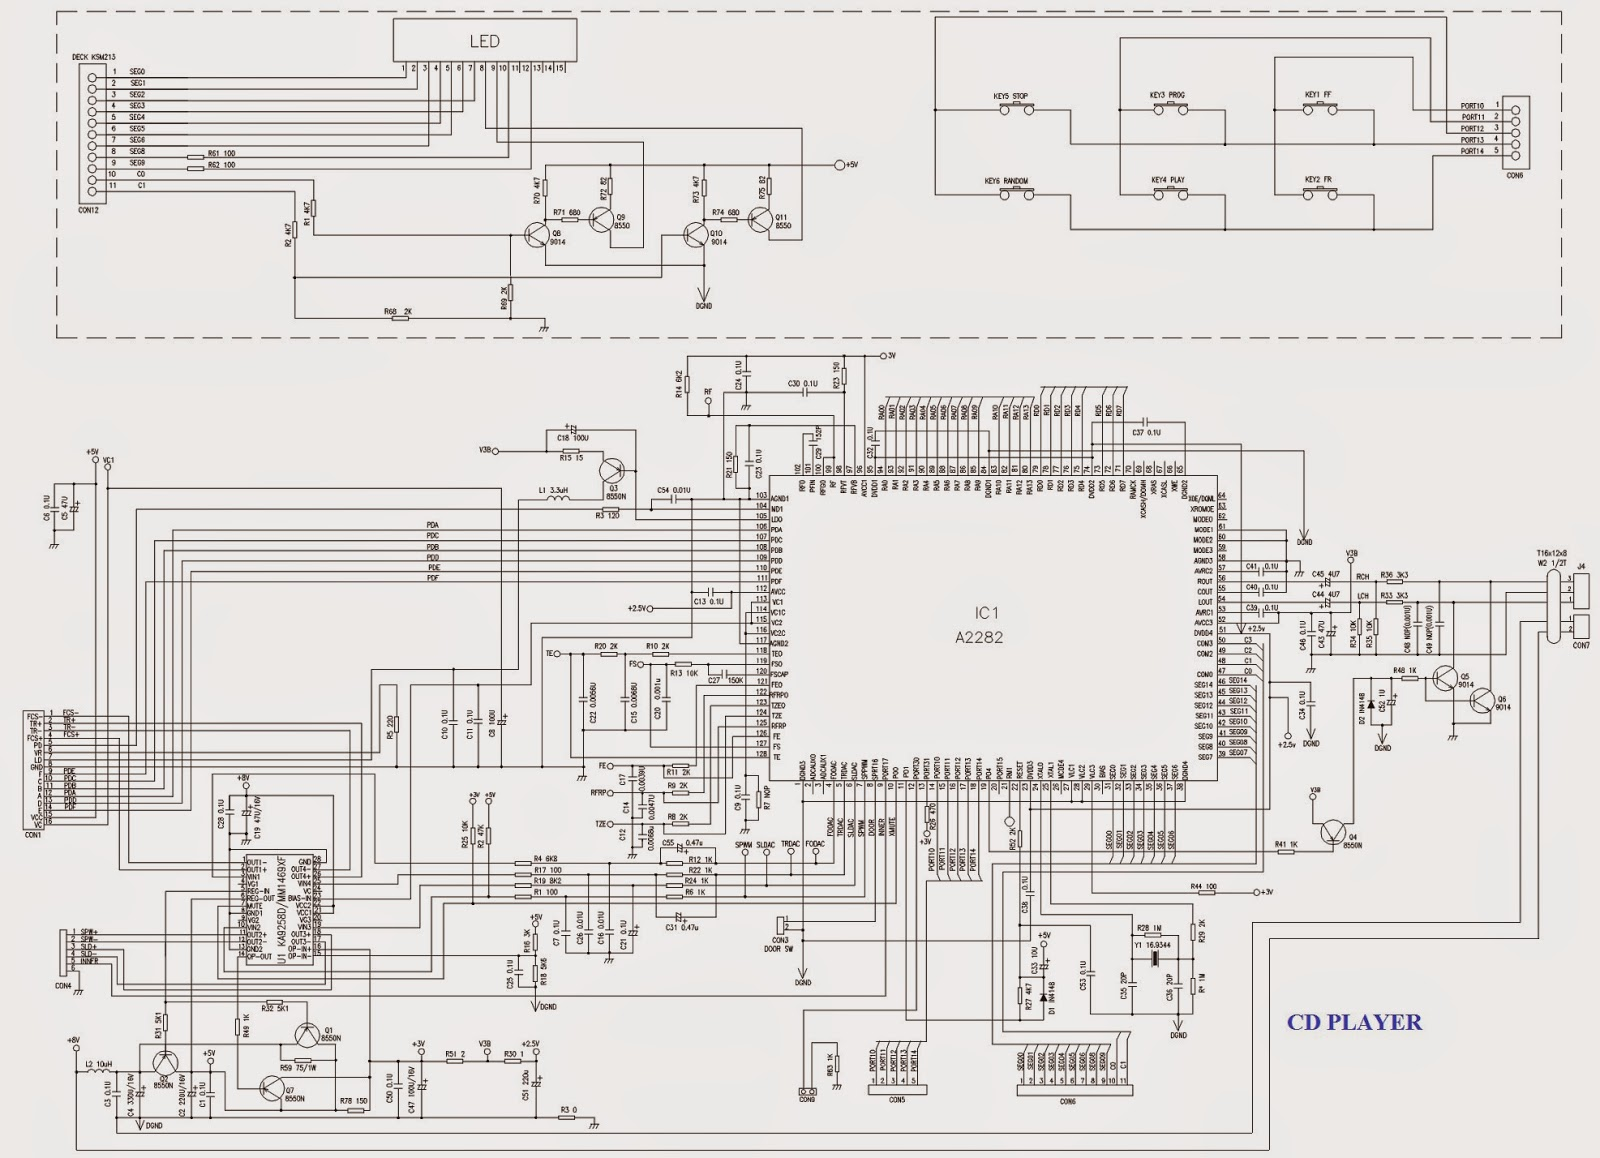 Wiring Diagram Cd Player Diagrams Sony Schematic Free Engine Image For User Manual Dual